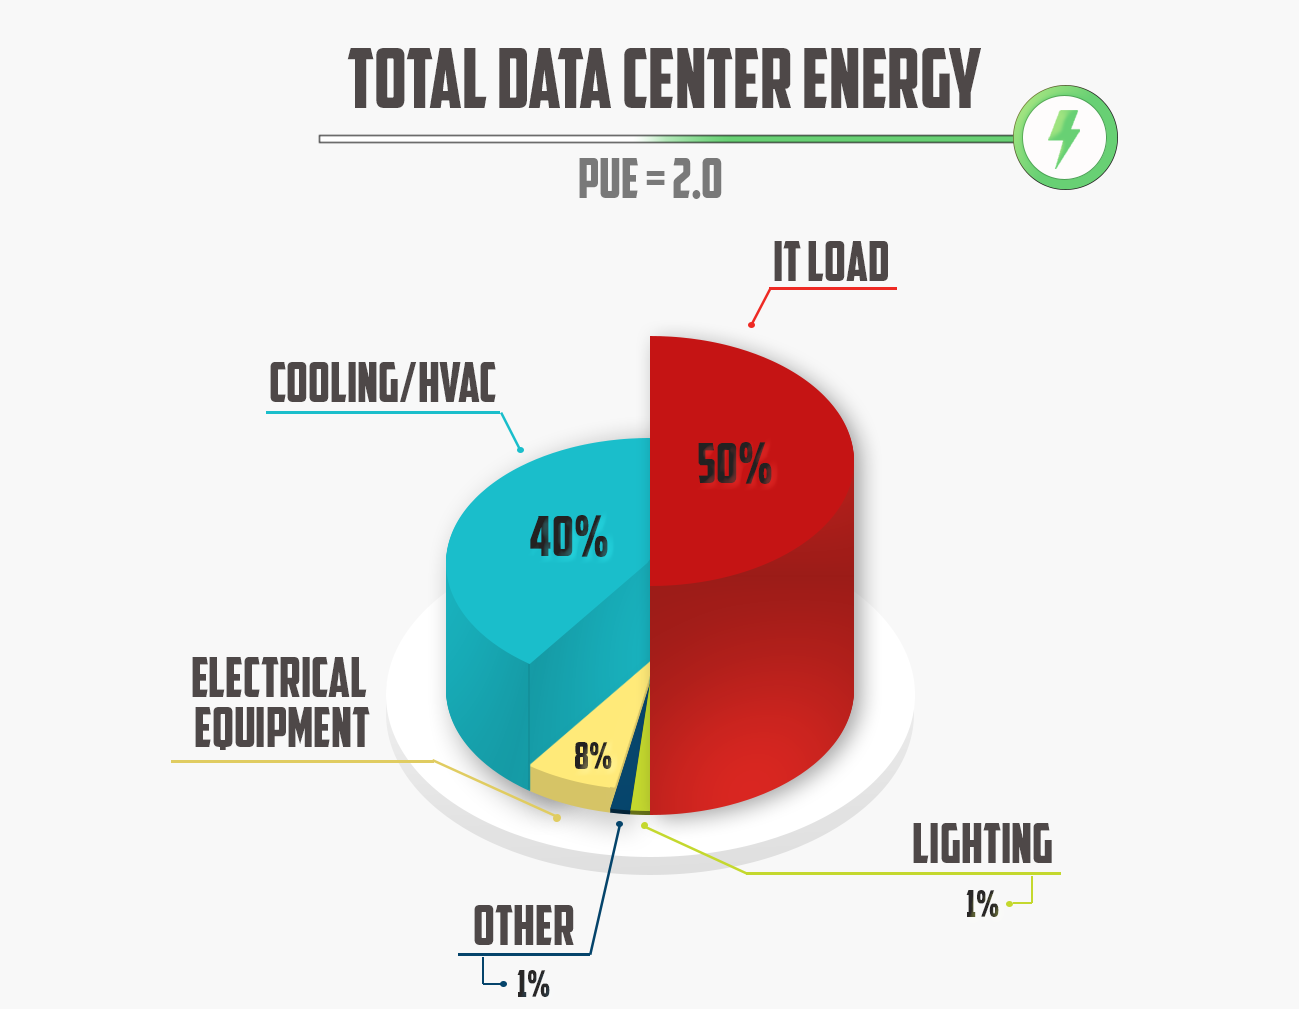 Figure 1 depicts a hypothetical breakdown of the total data center energy consumption.